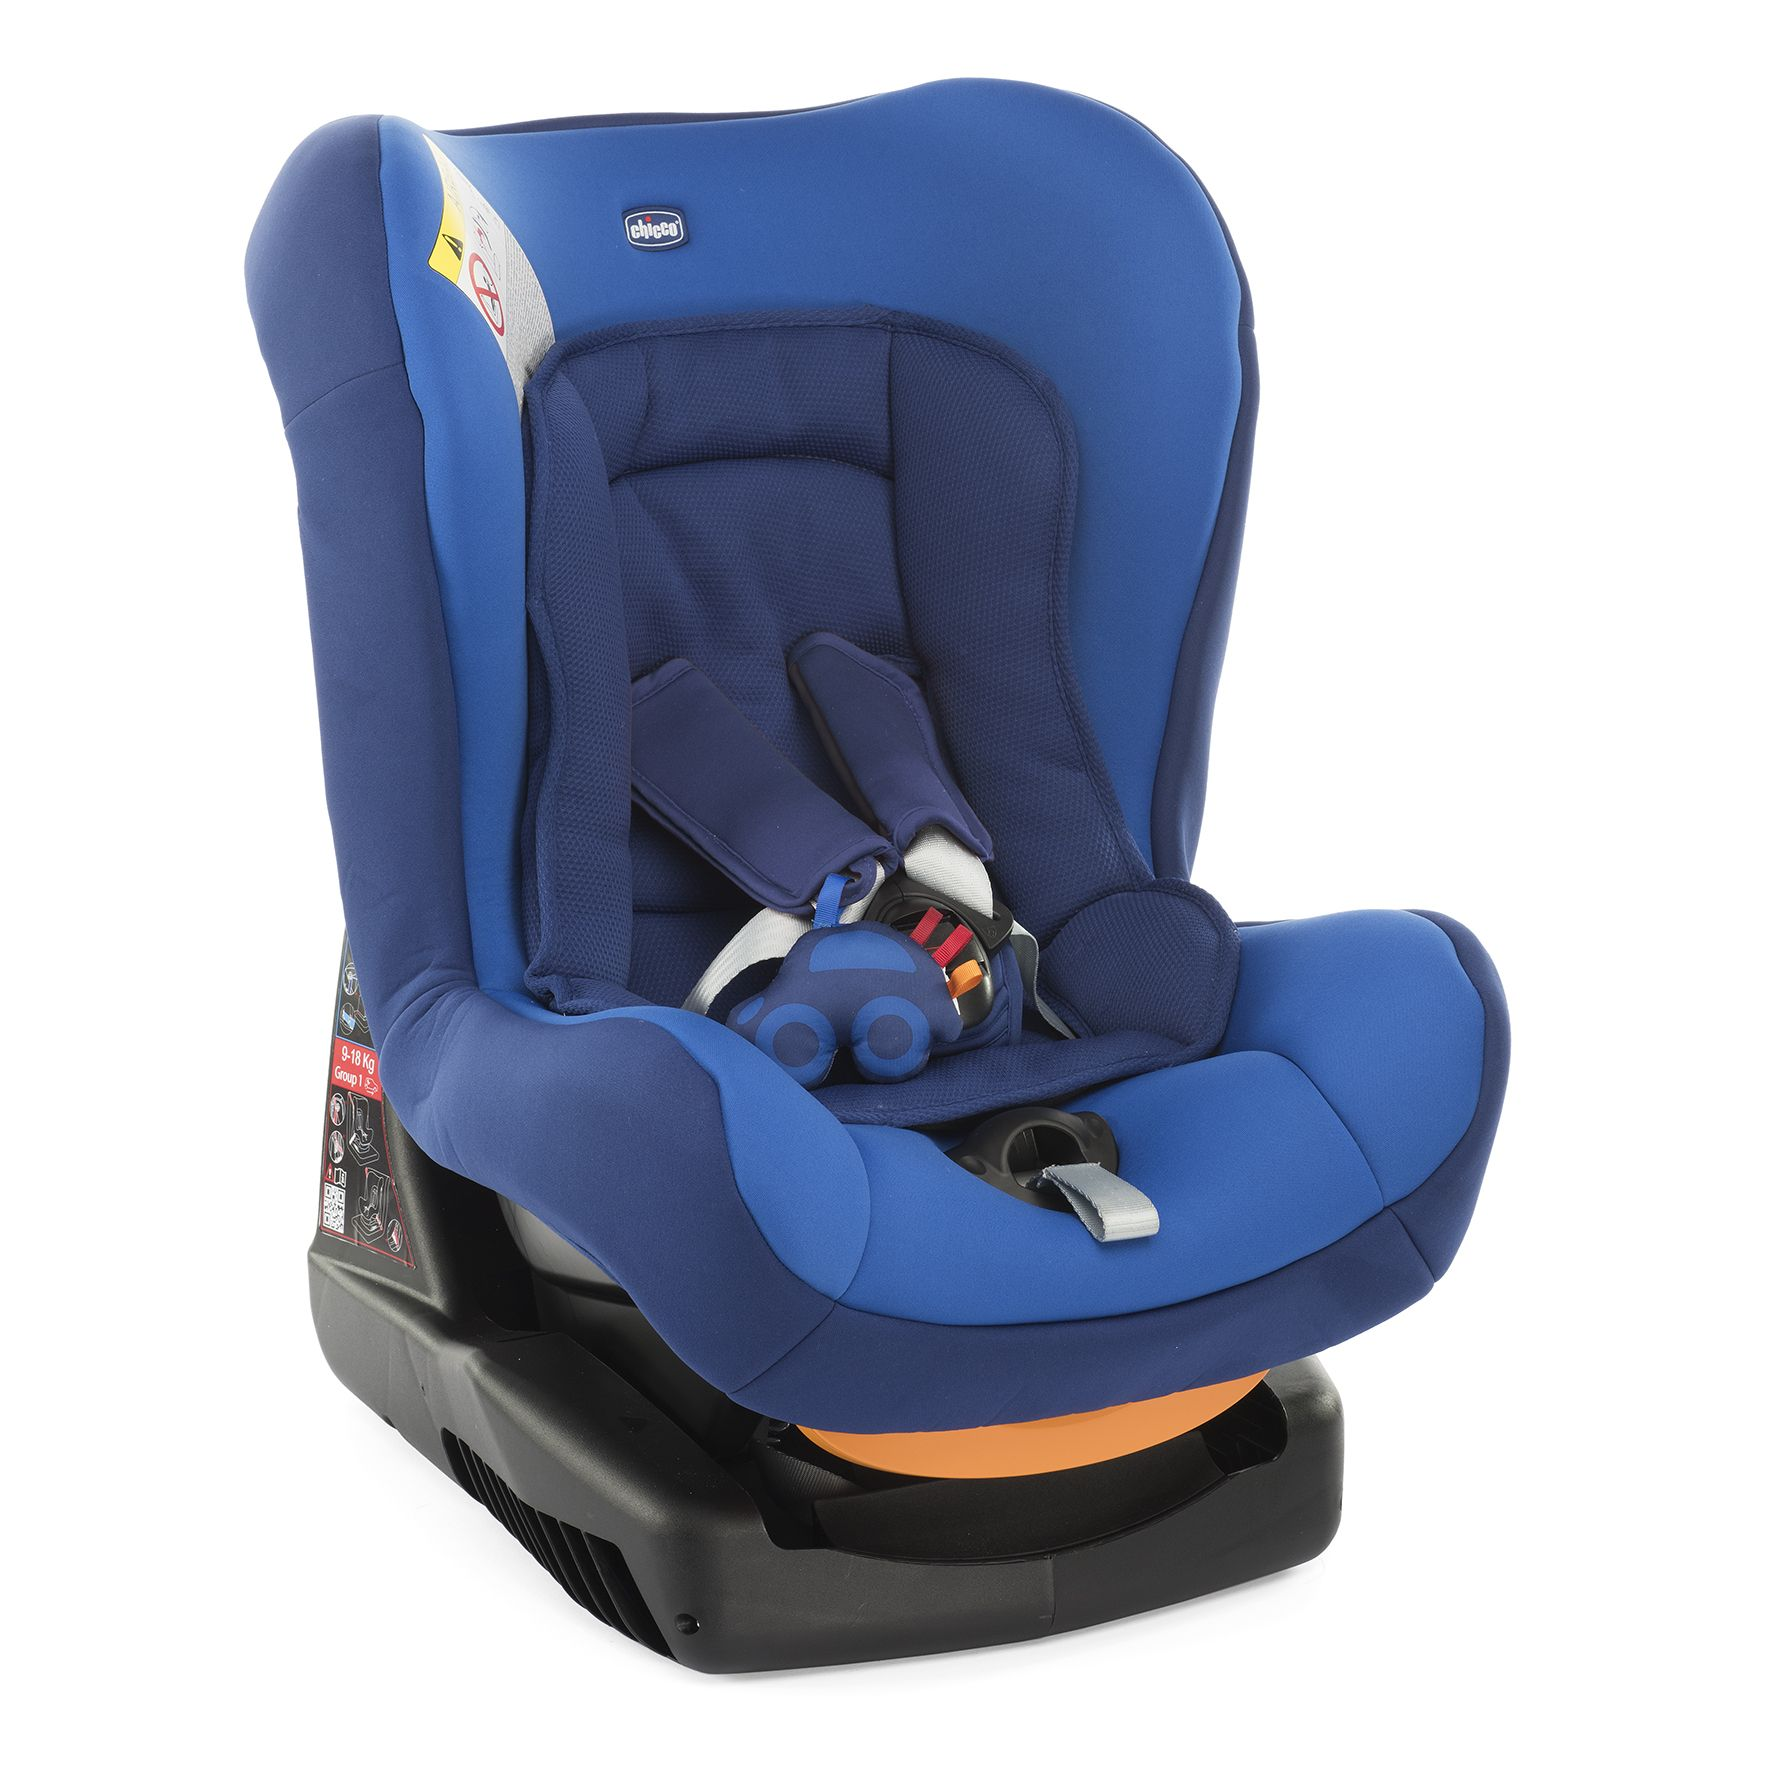 Si ge d enfant chicco cosmos gr 0 1 2018 power blue for Siege enfant